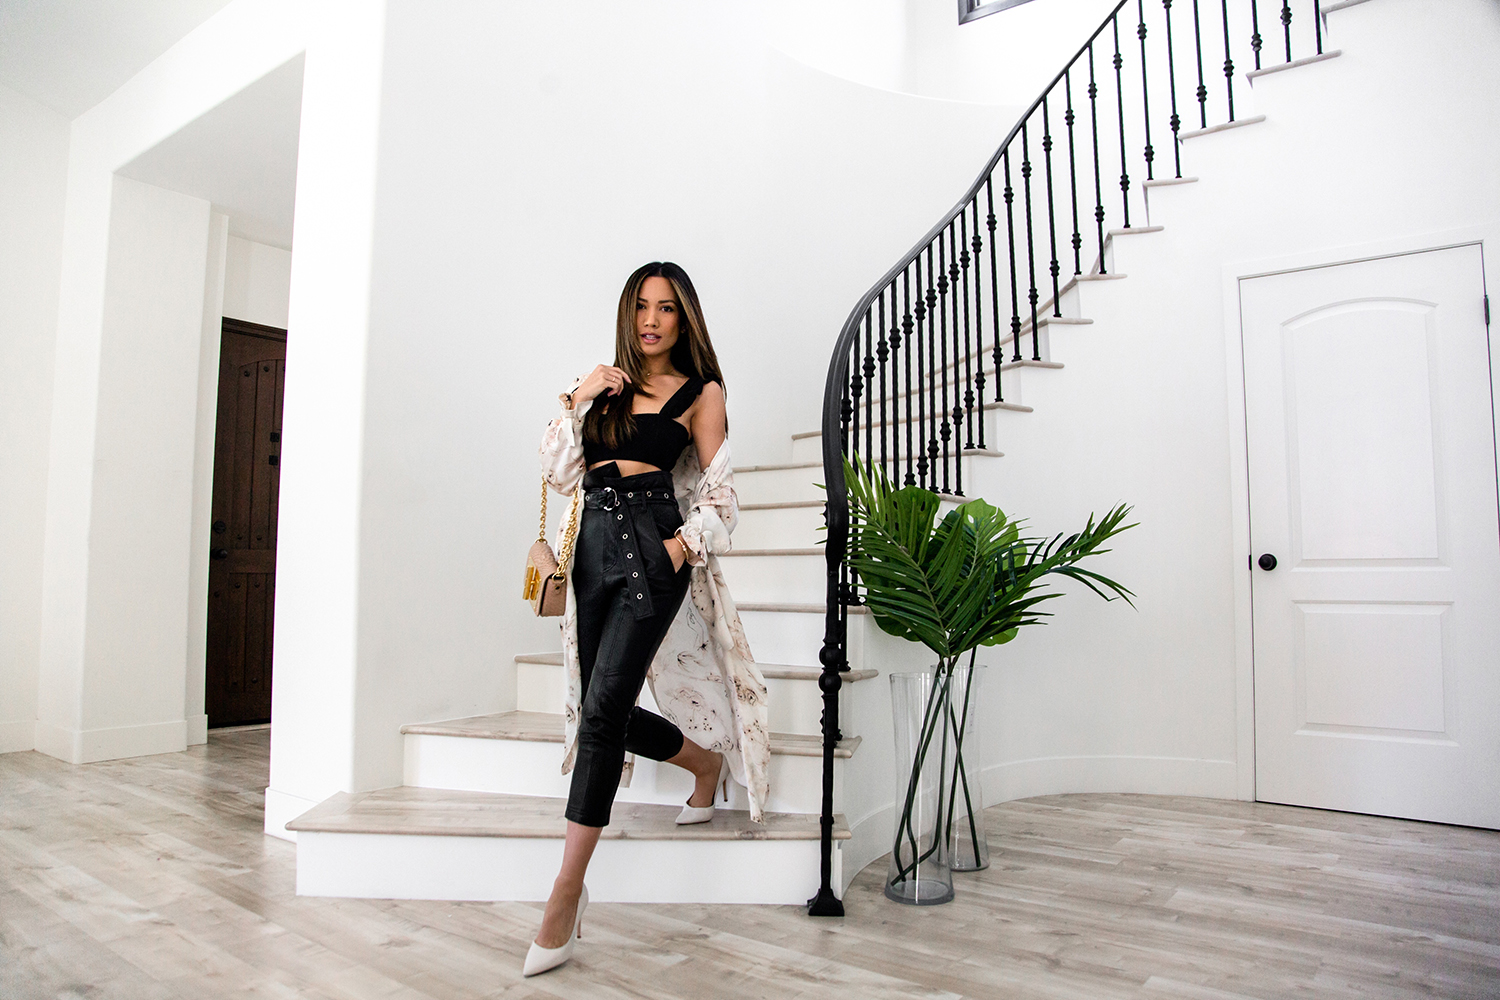 Jessi Malay wearing Marissa Webb Leather Pant